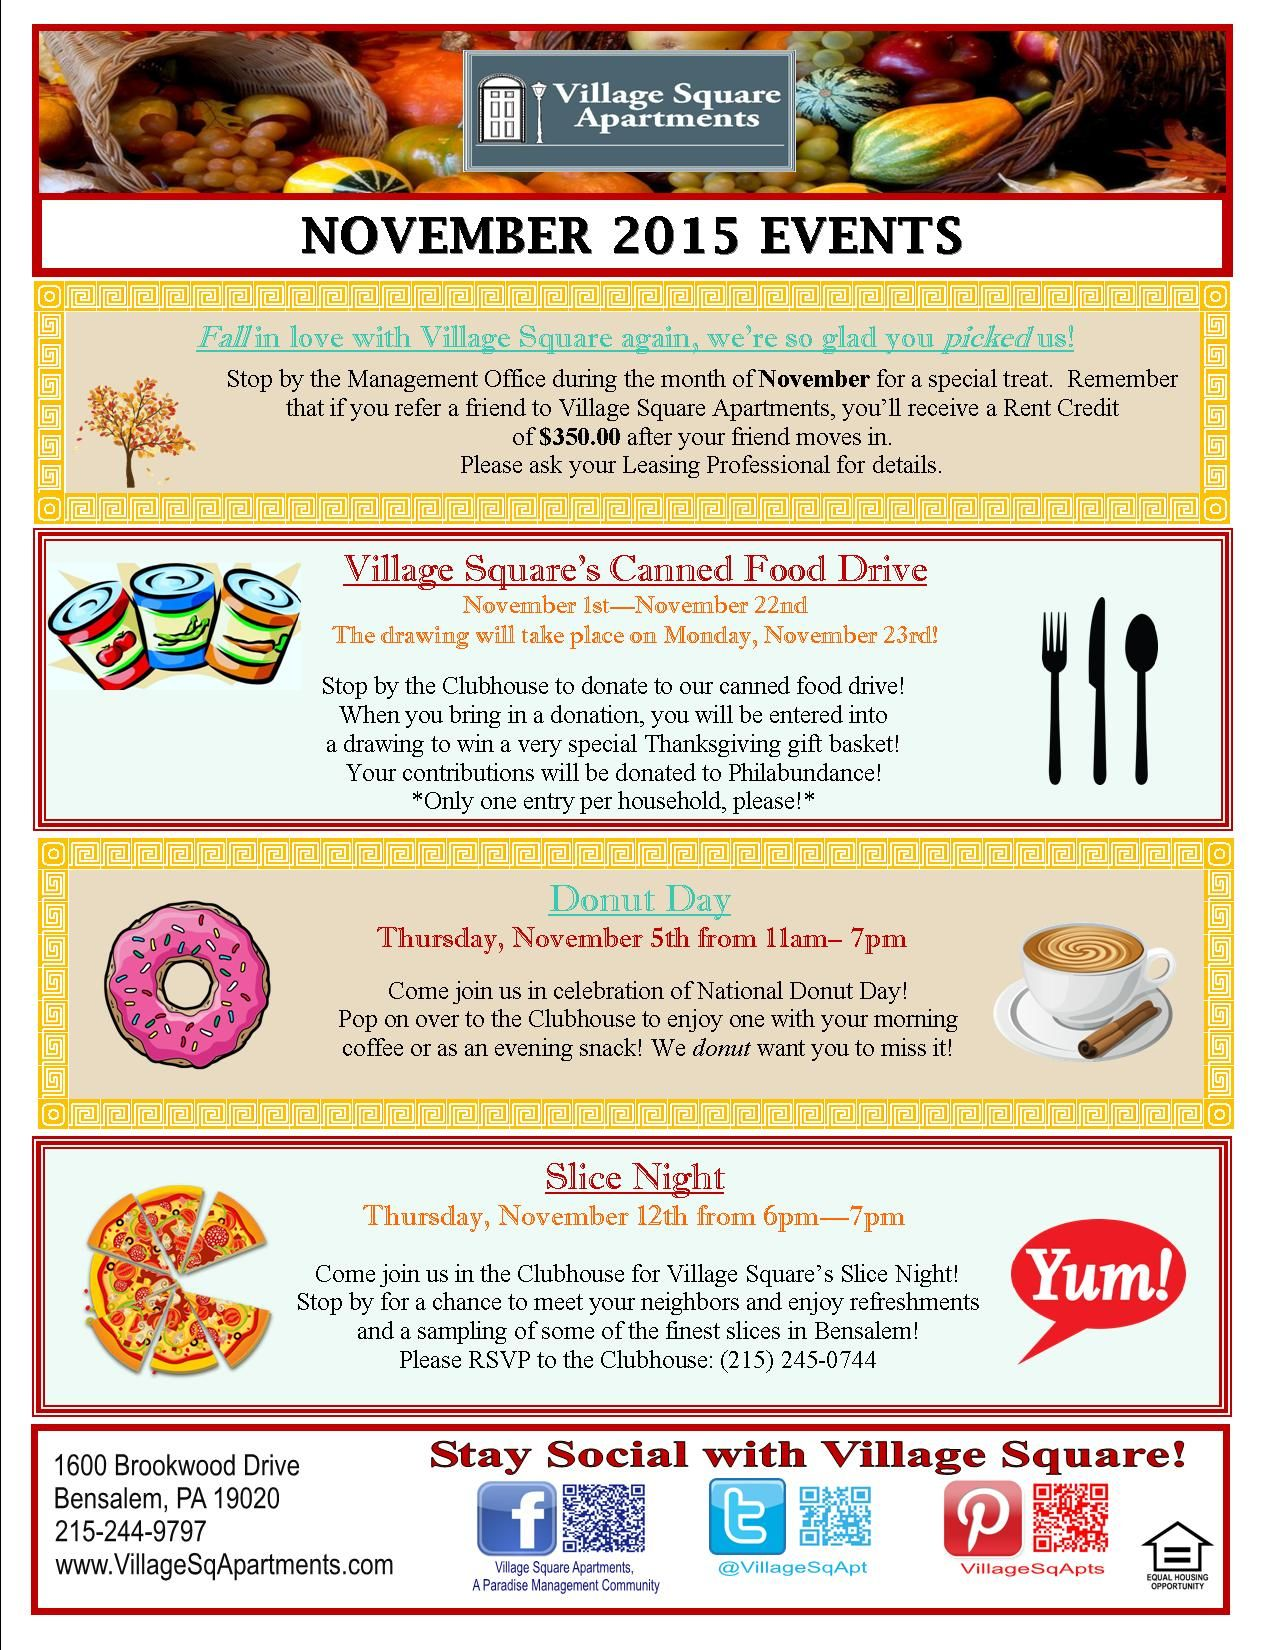 Resident Events Image By Village Square Apartments Apartment